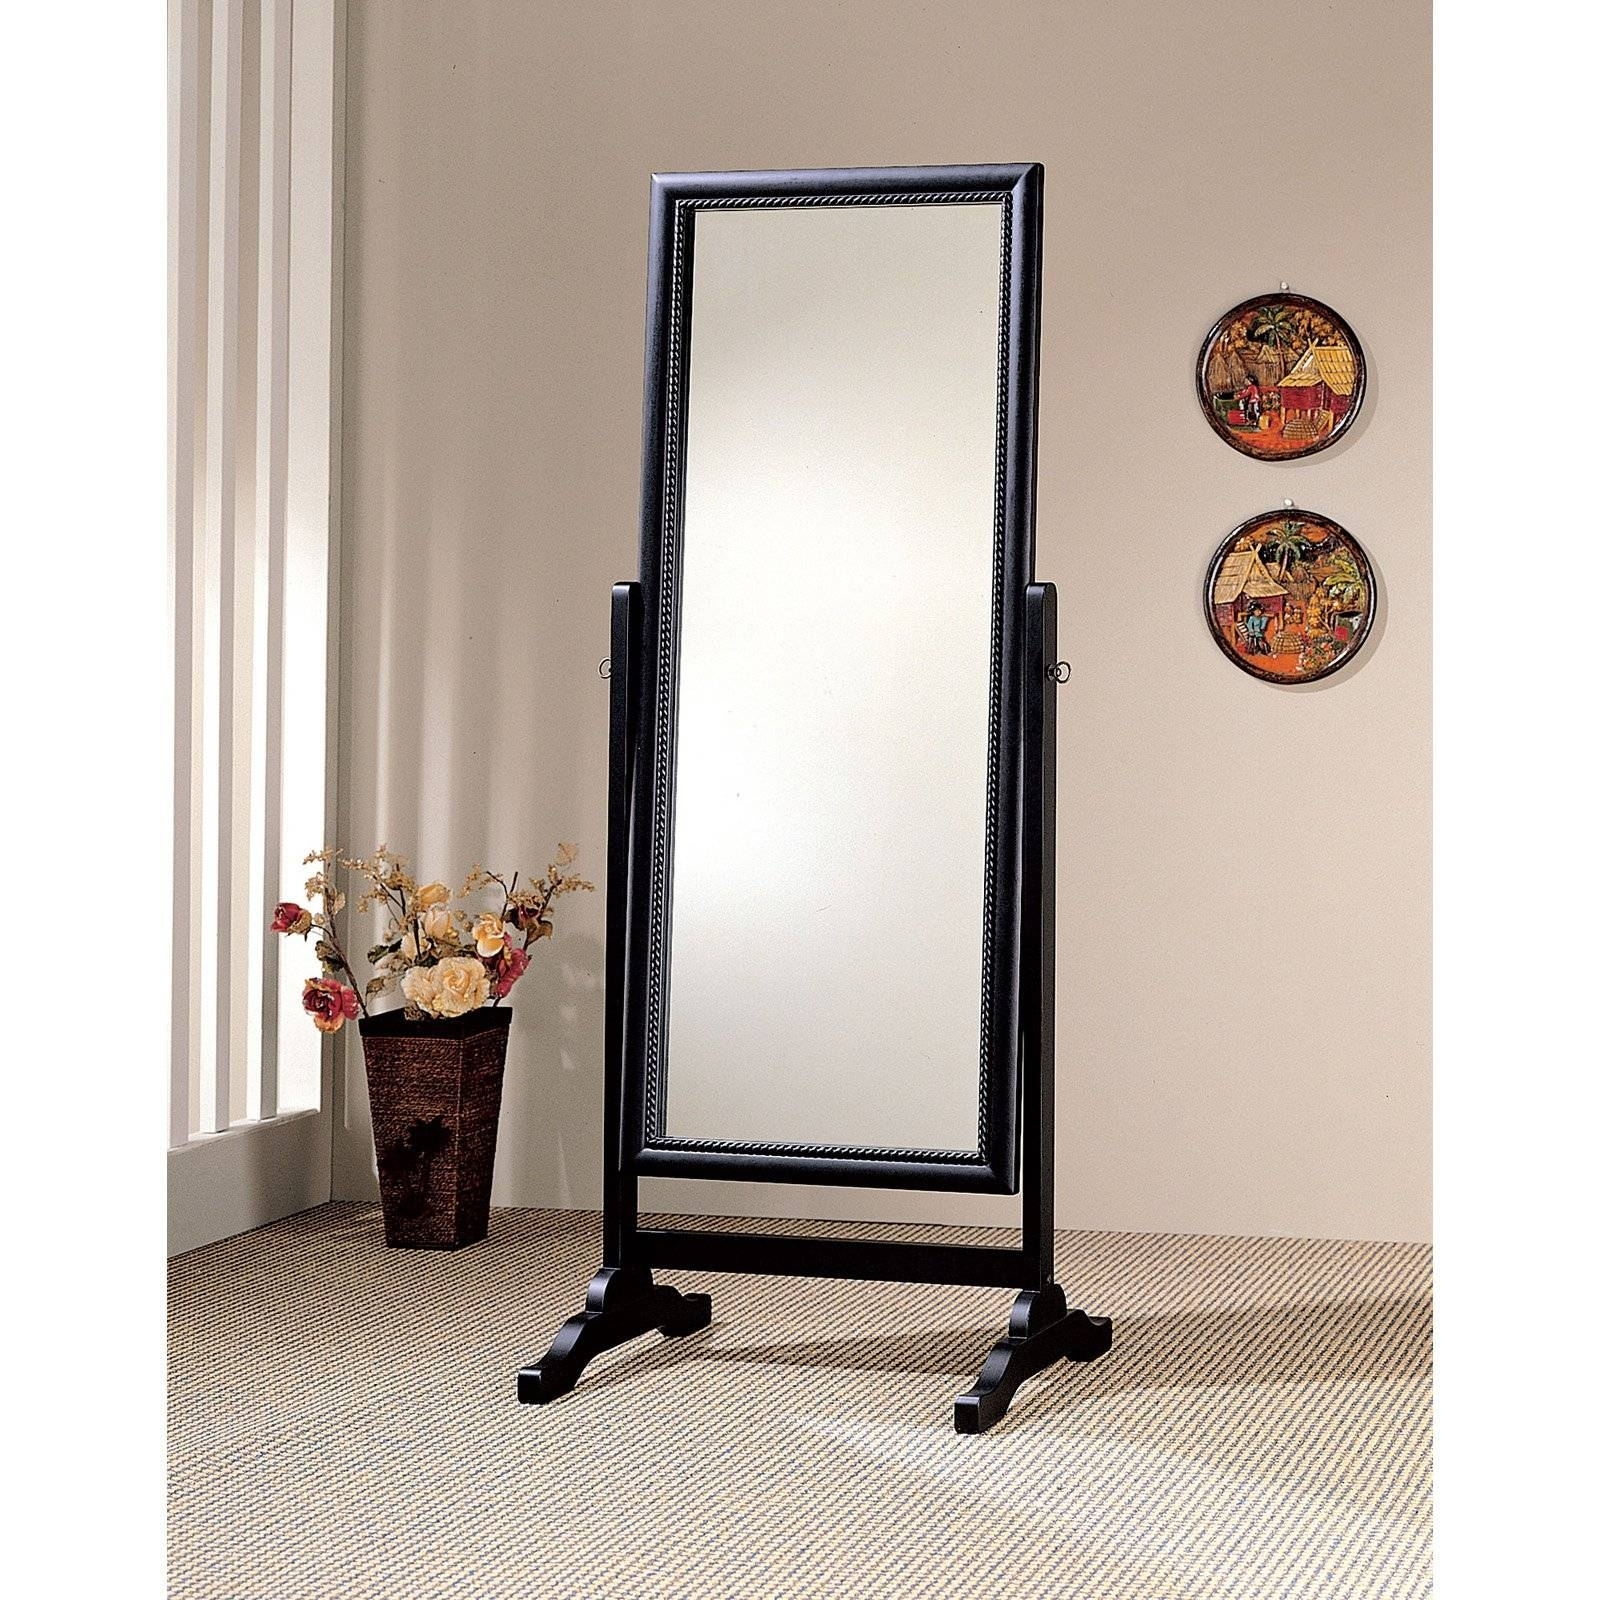 Mirror : Cheval Freestanding Mirror Rare Cheval Free Standing With Regard To Cheval Free Standing Mirrors (View 14 of 15)